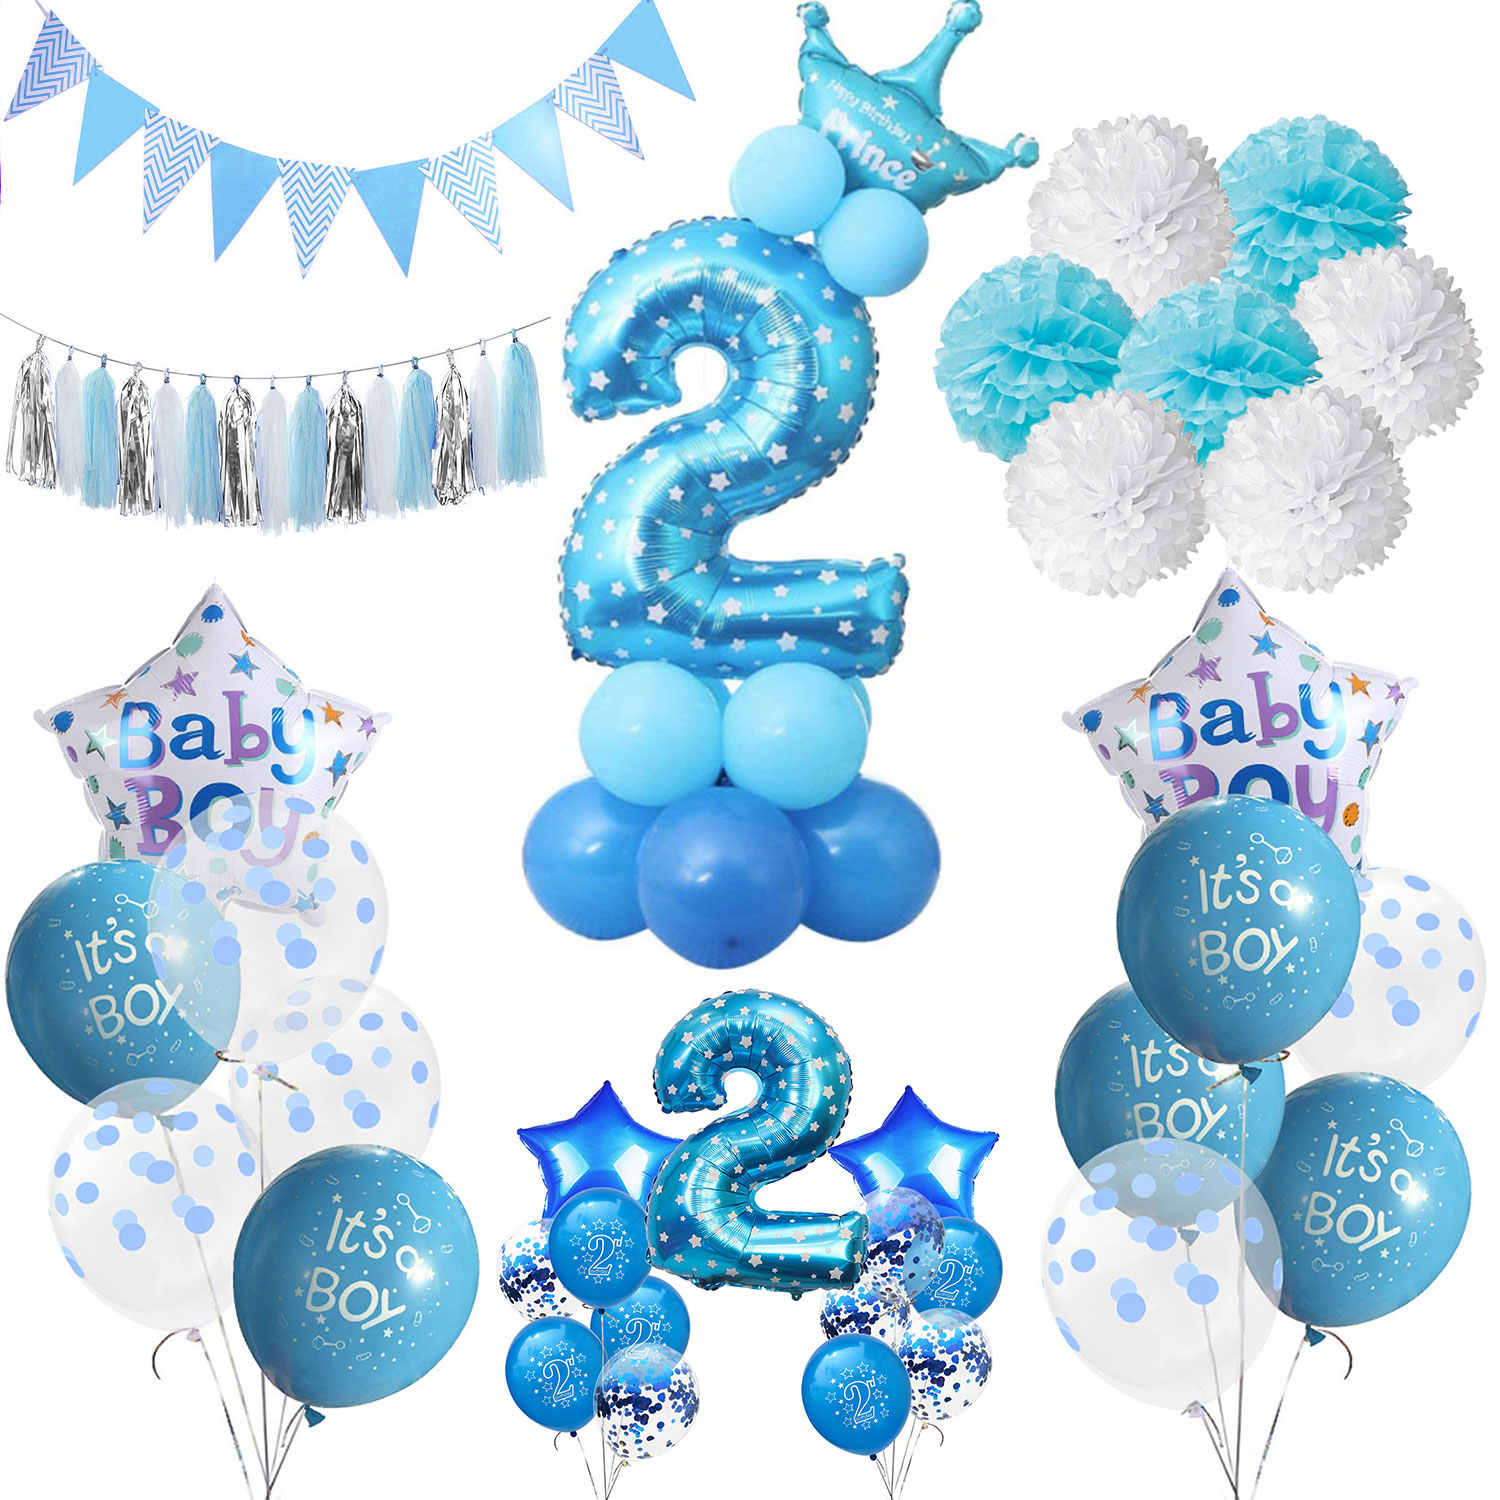 ZLJQ Boy 2 Year Old Birthday Party Decor Foil Confetti Balloons Banner Decorations Kids 2nd